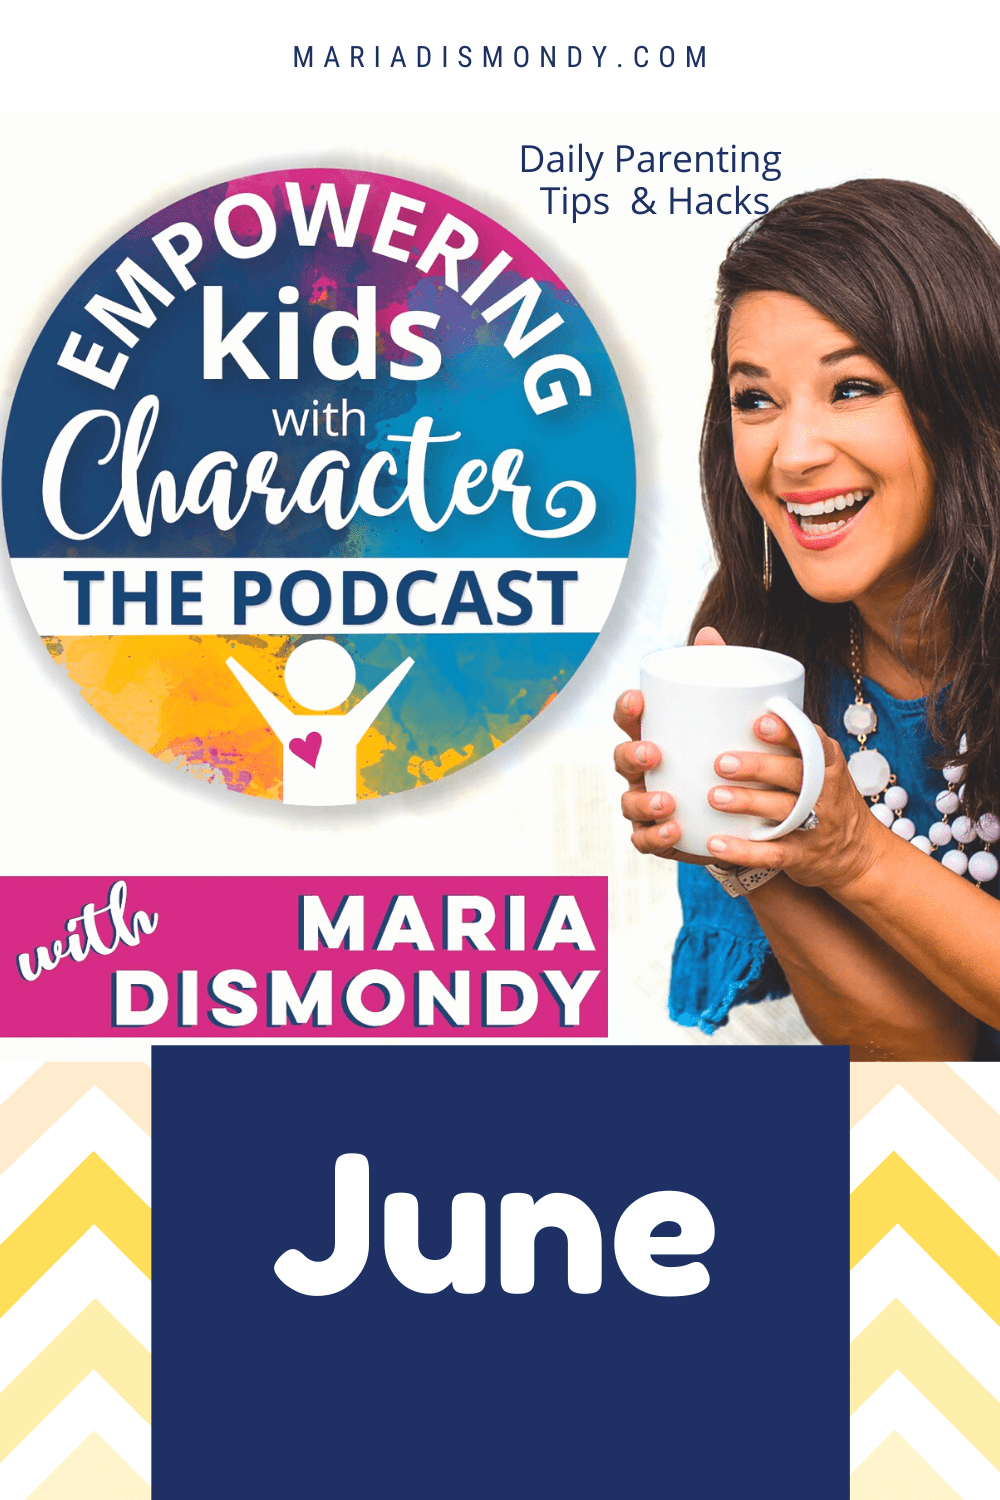 EKWC THE PODCAST-DAILY PARENTING TIPS & HACK- June